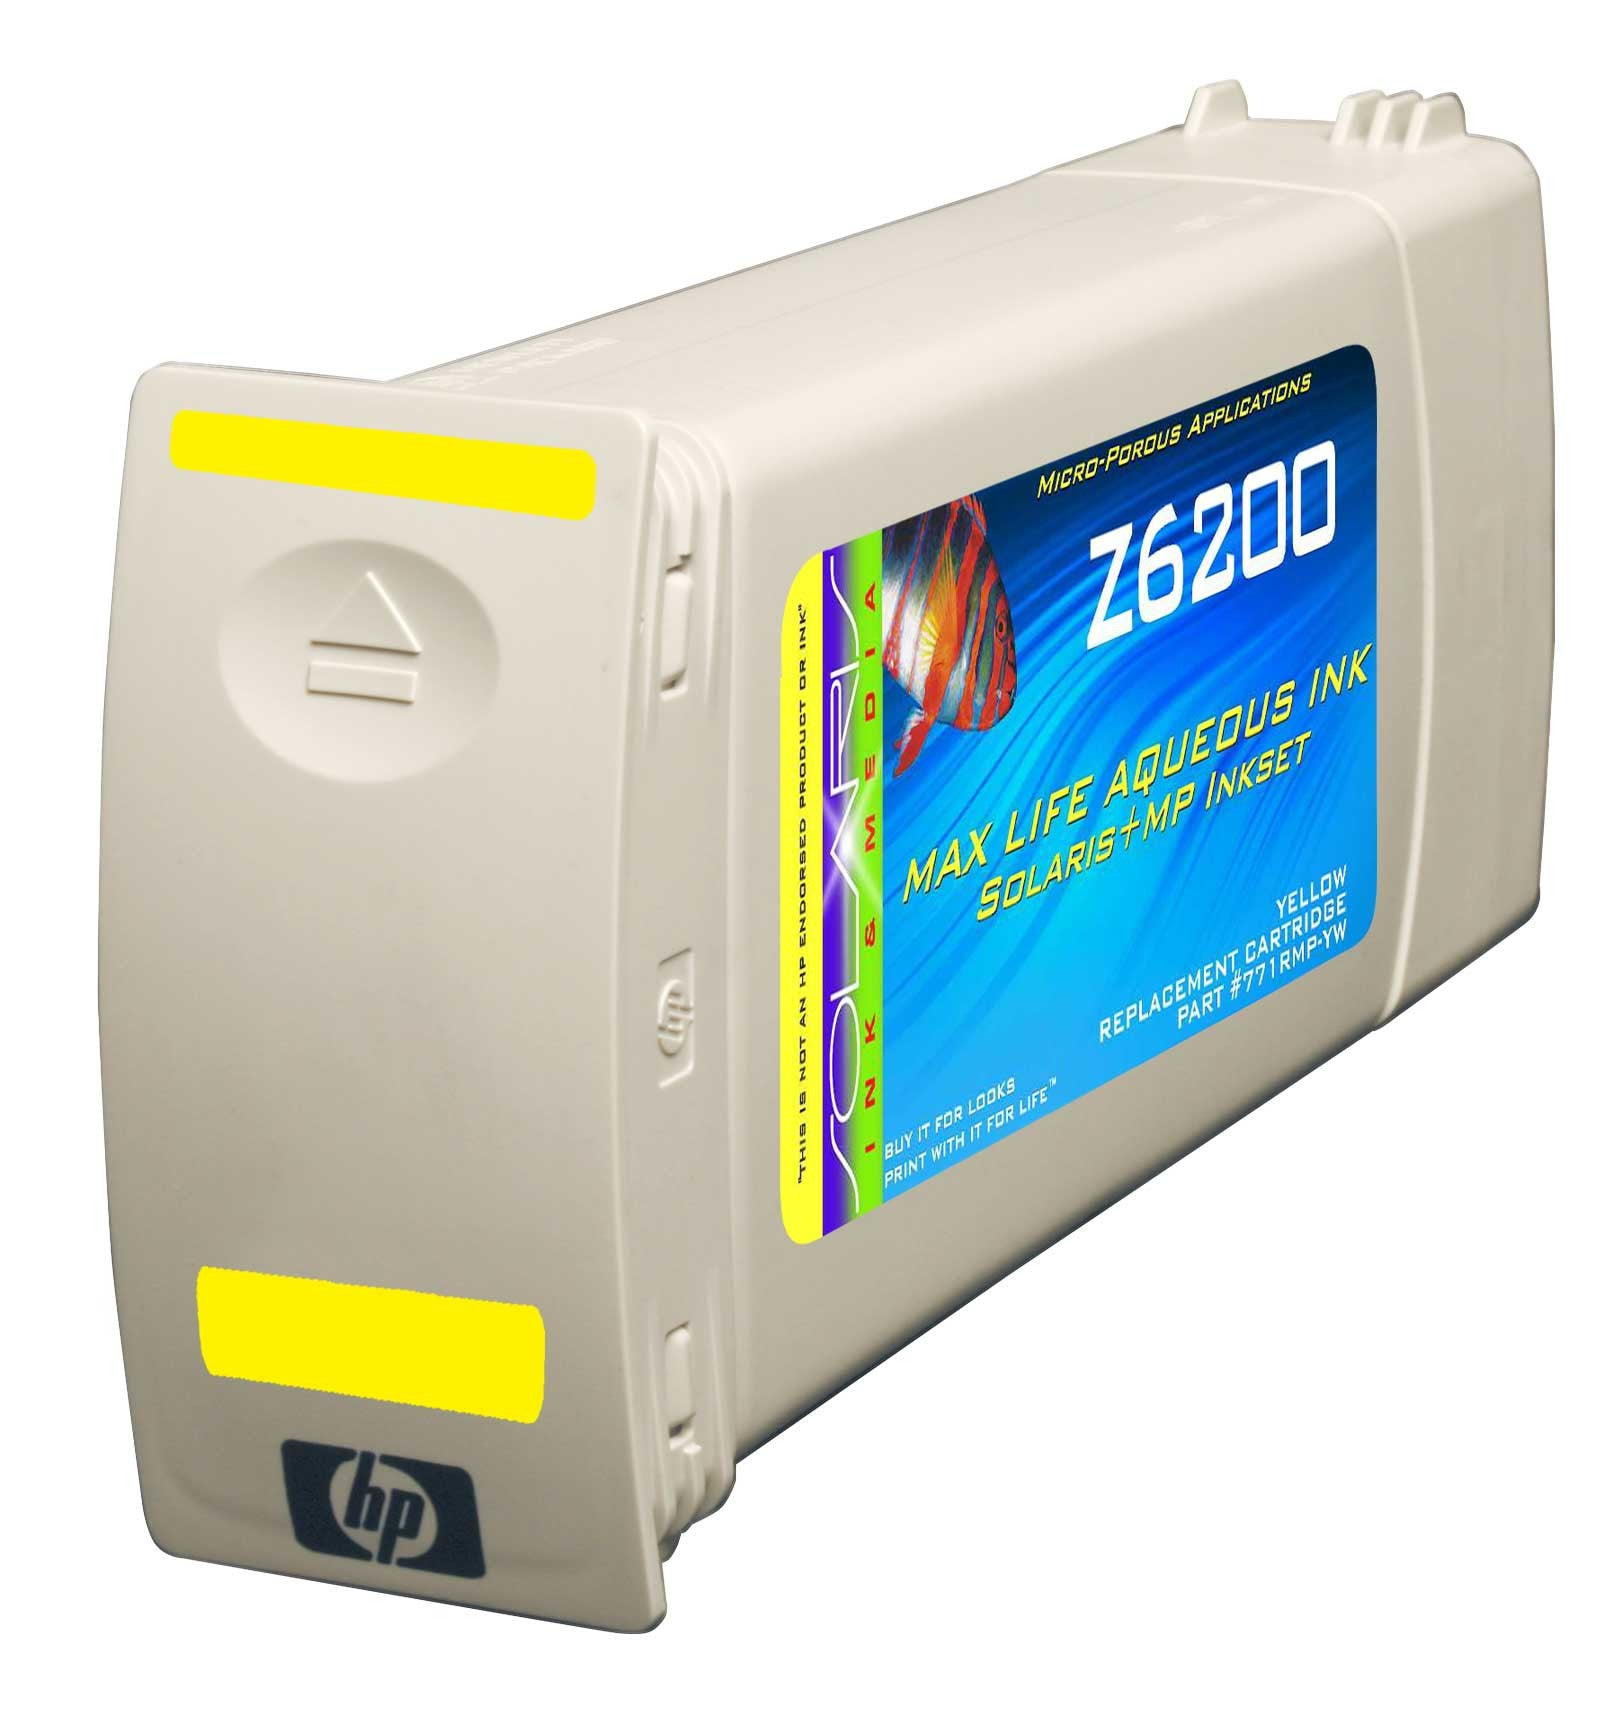 HP 771 Yellow Ink Cartridge (CE040A) 775ml